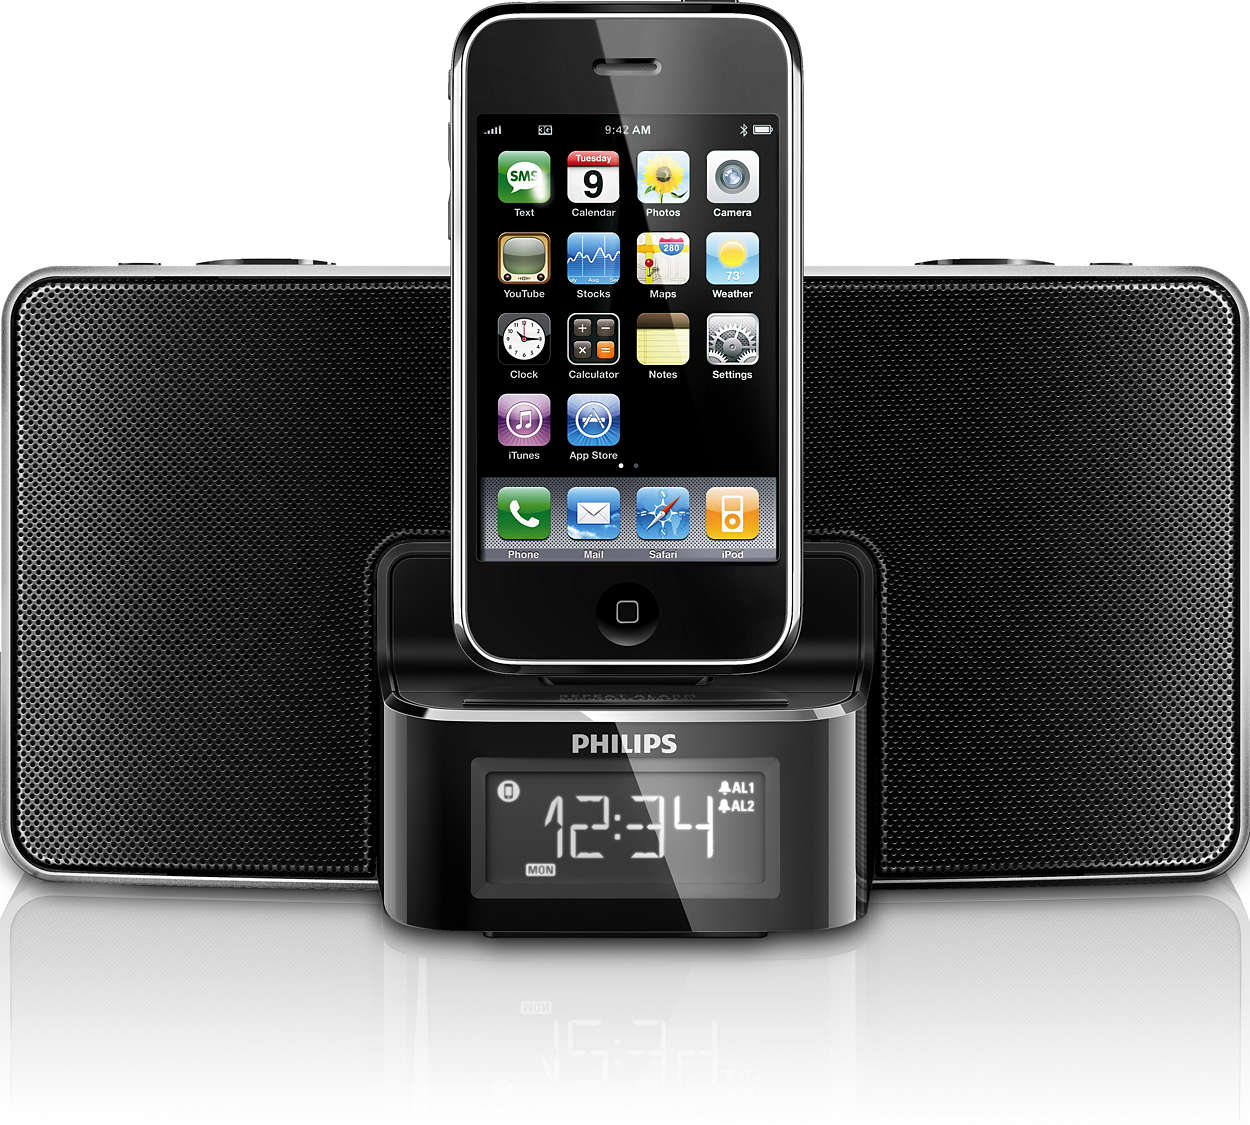 radiowecker f r ipod iphone dc220 12 philips. Black Bedroom Furniture Sets. Home Design Ideas